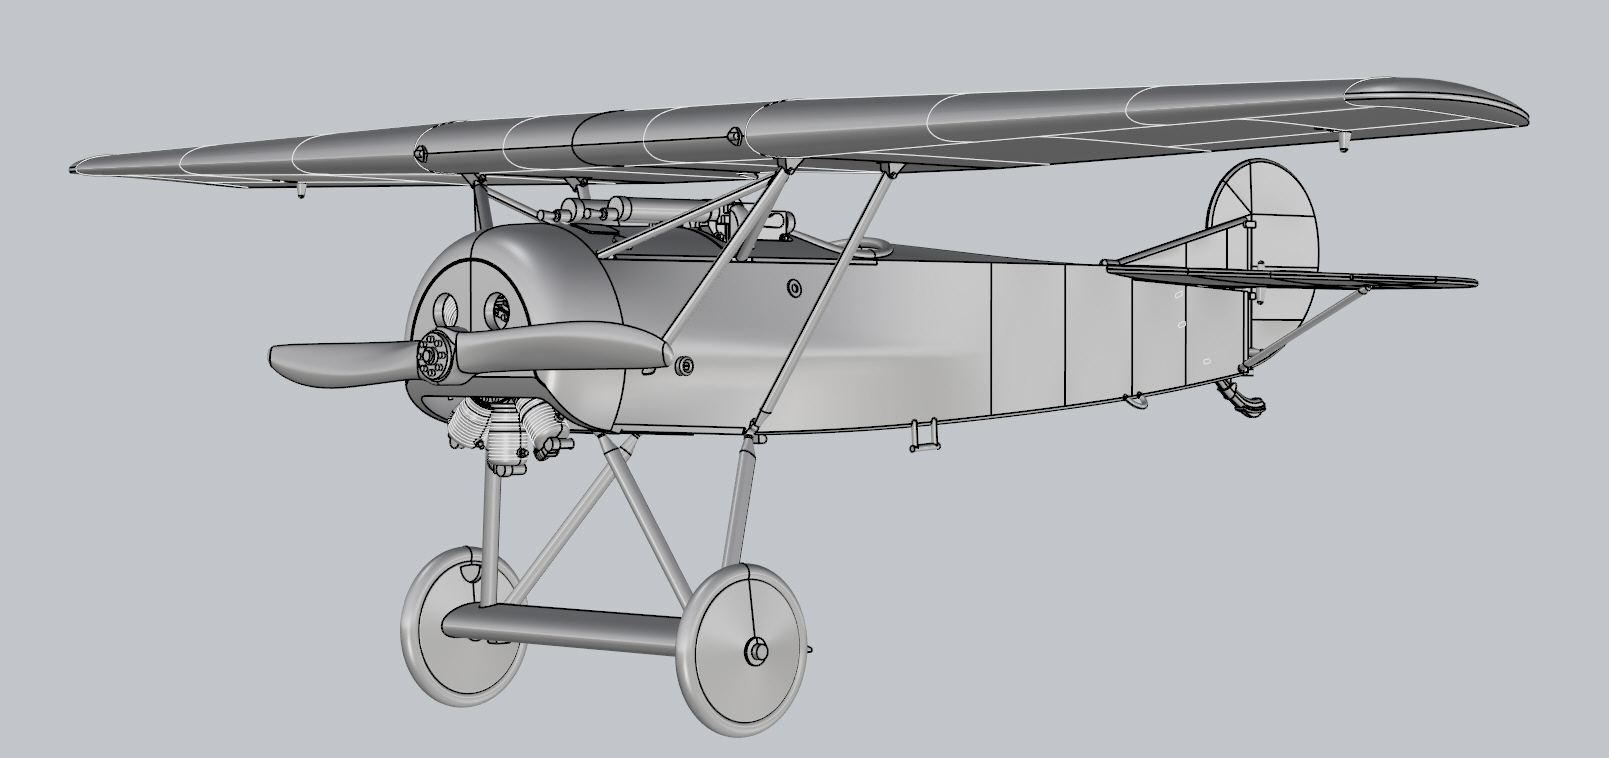 Fokker E.V Model kit Renders